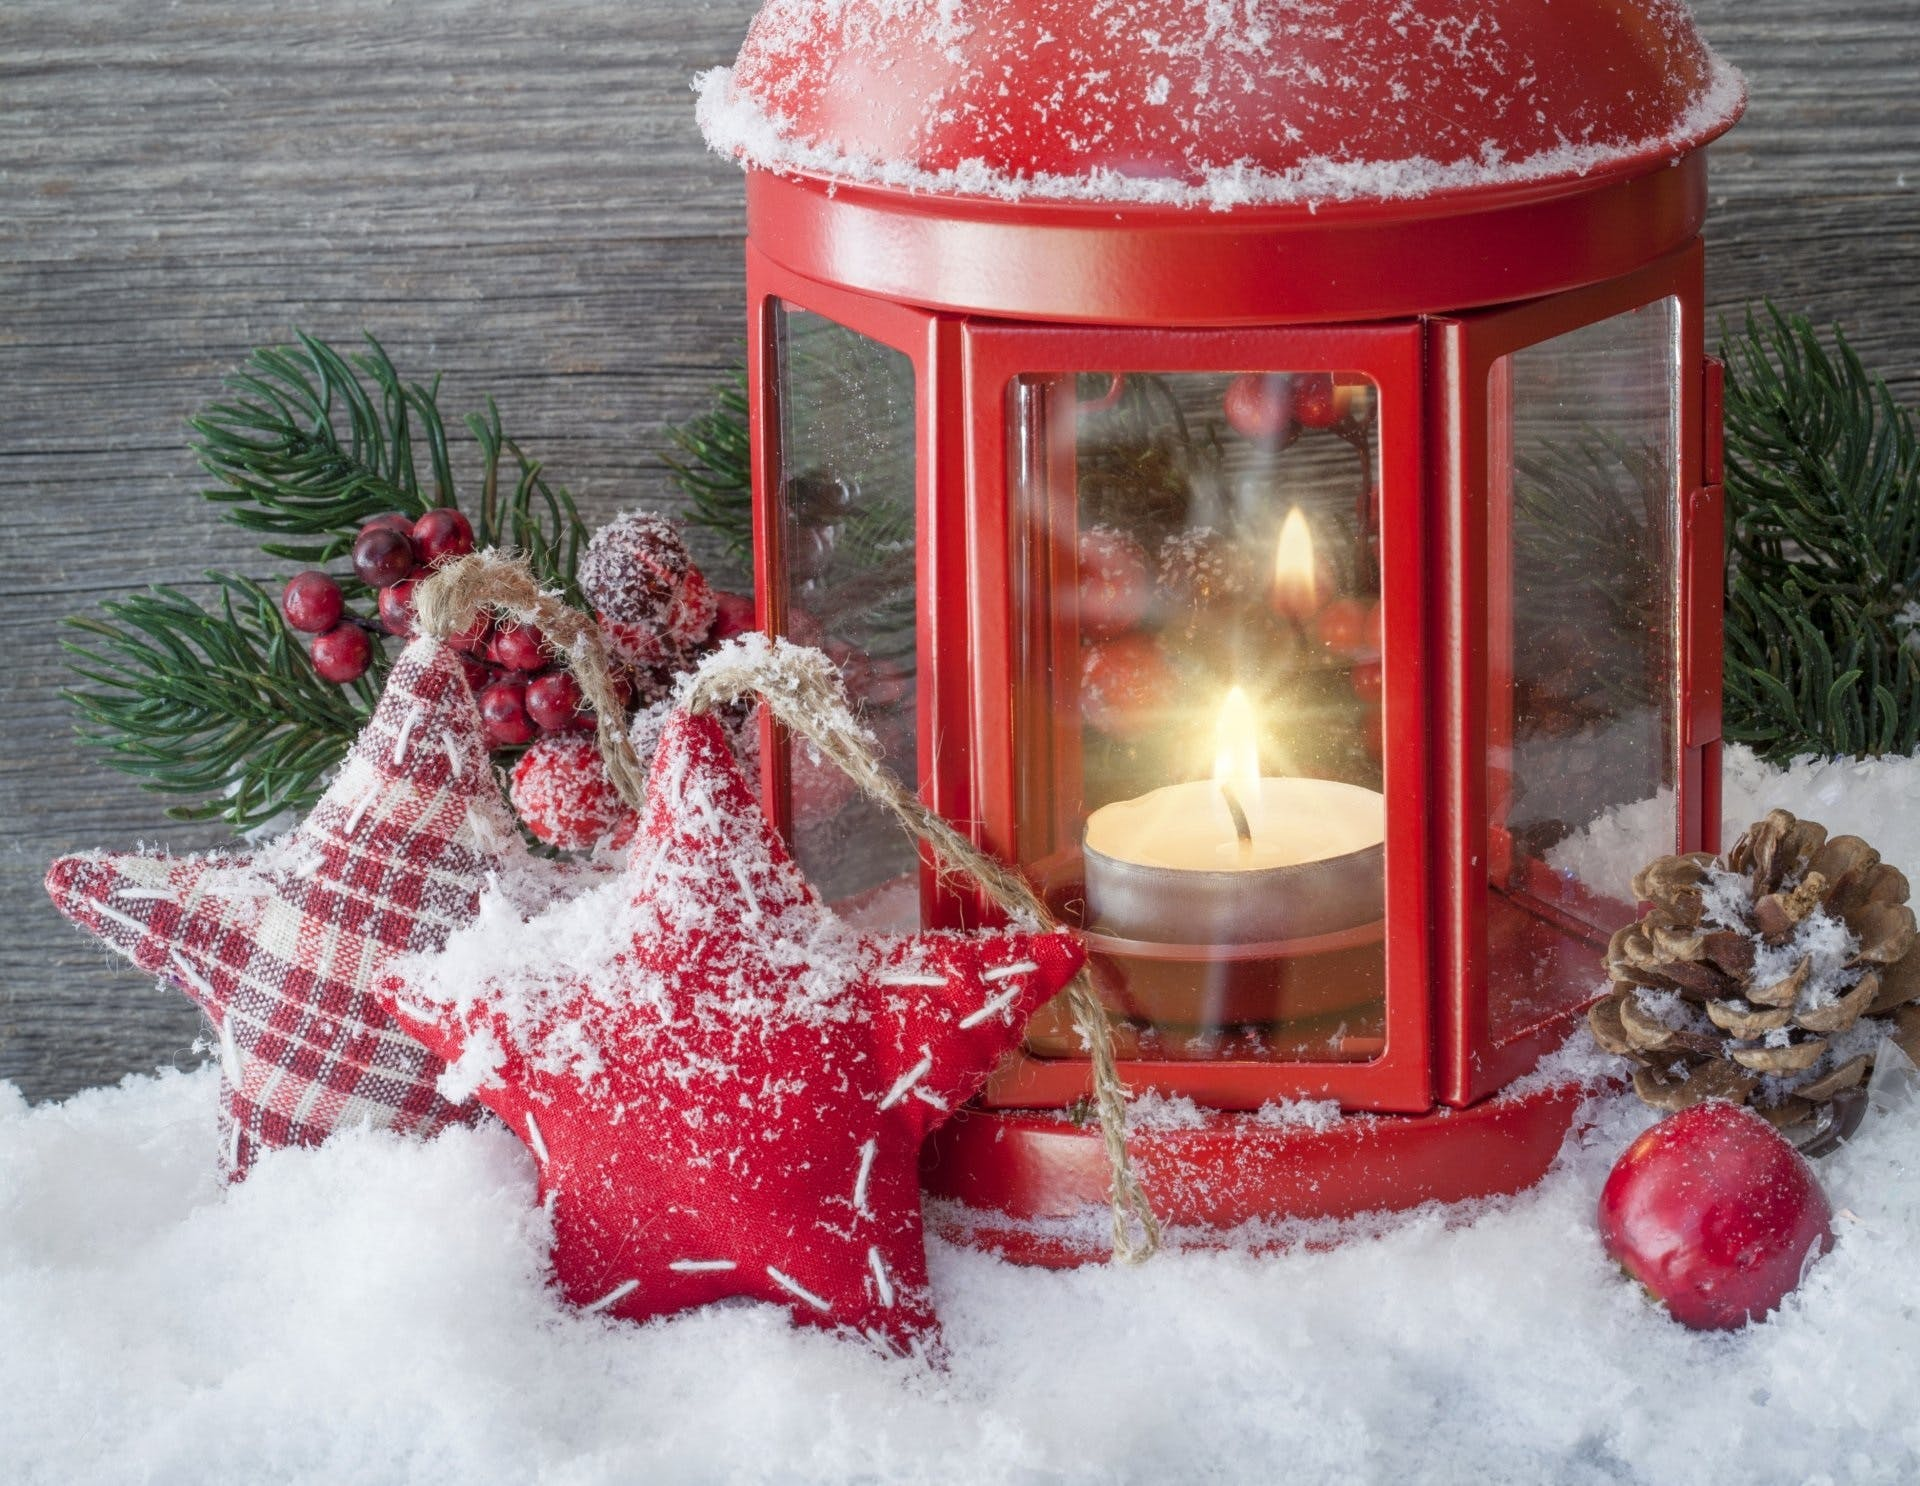 Free stock photo of cold, snow, holiday, red